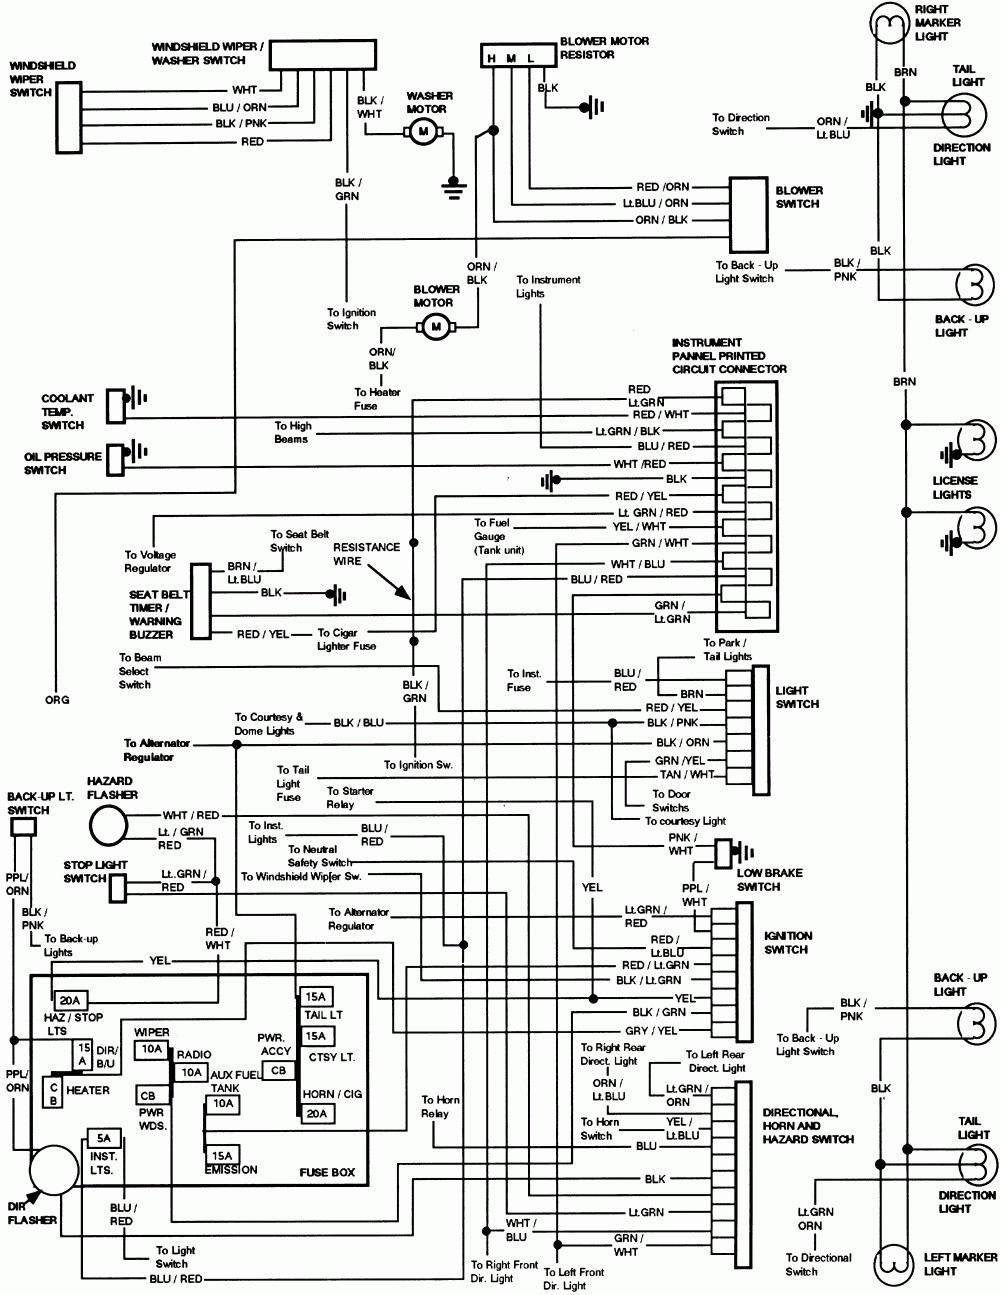 hight resolution of 1987 ford f 150 tfi wiring diagram wiring diagram host 1987 ford f150 wiring diagram 1987 ford f 150 wiring diagram